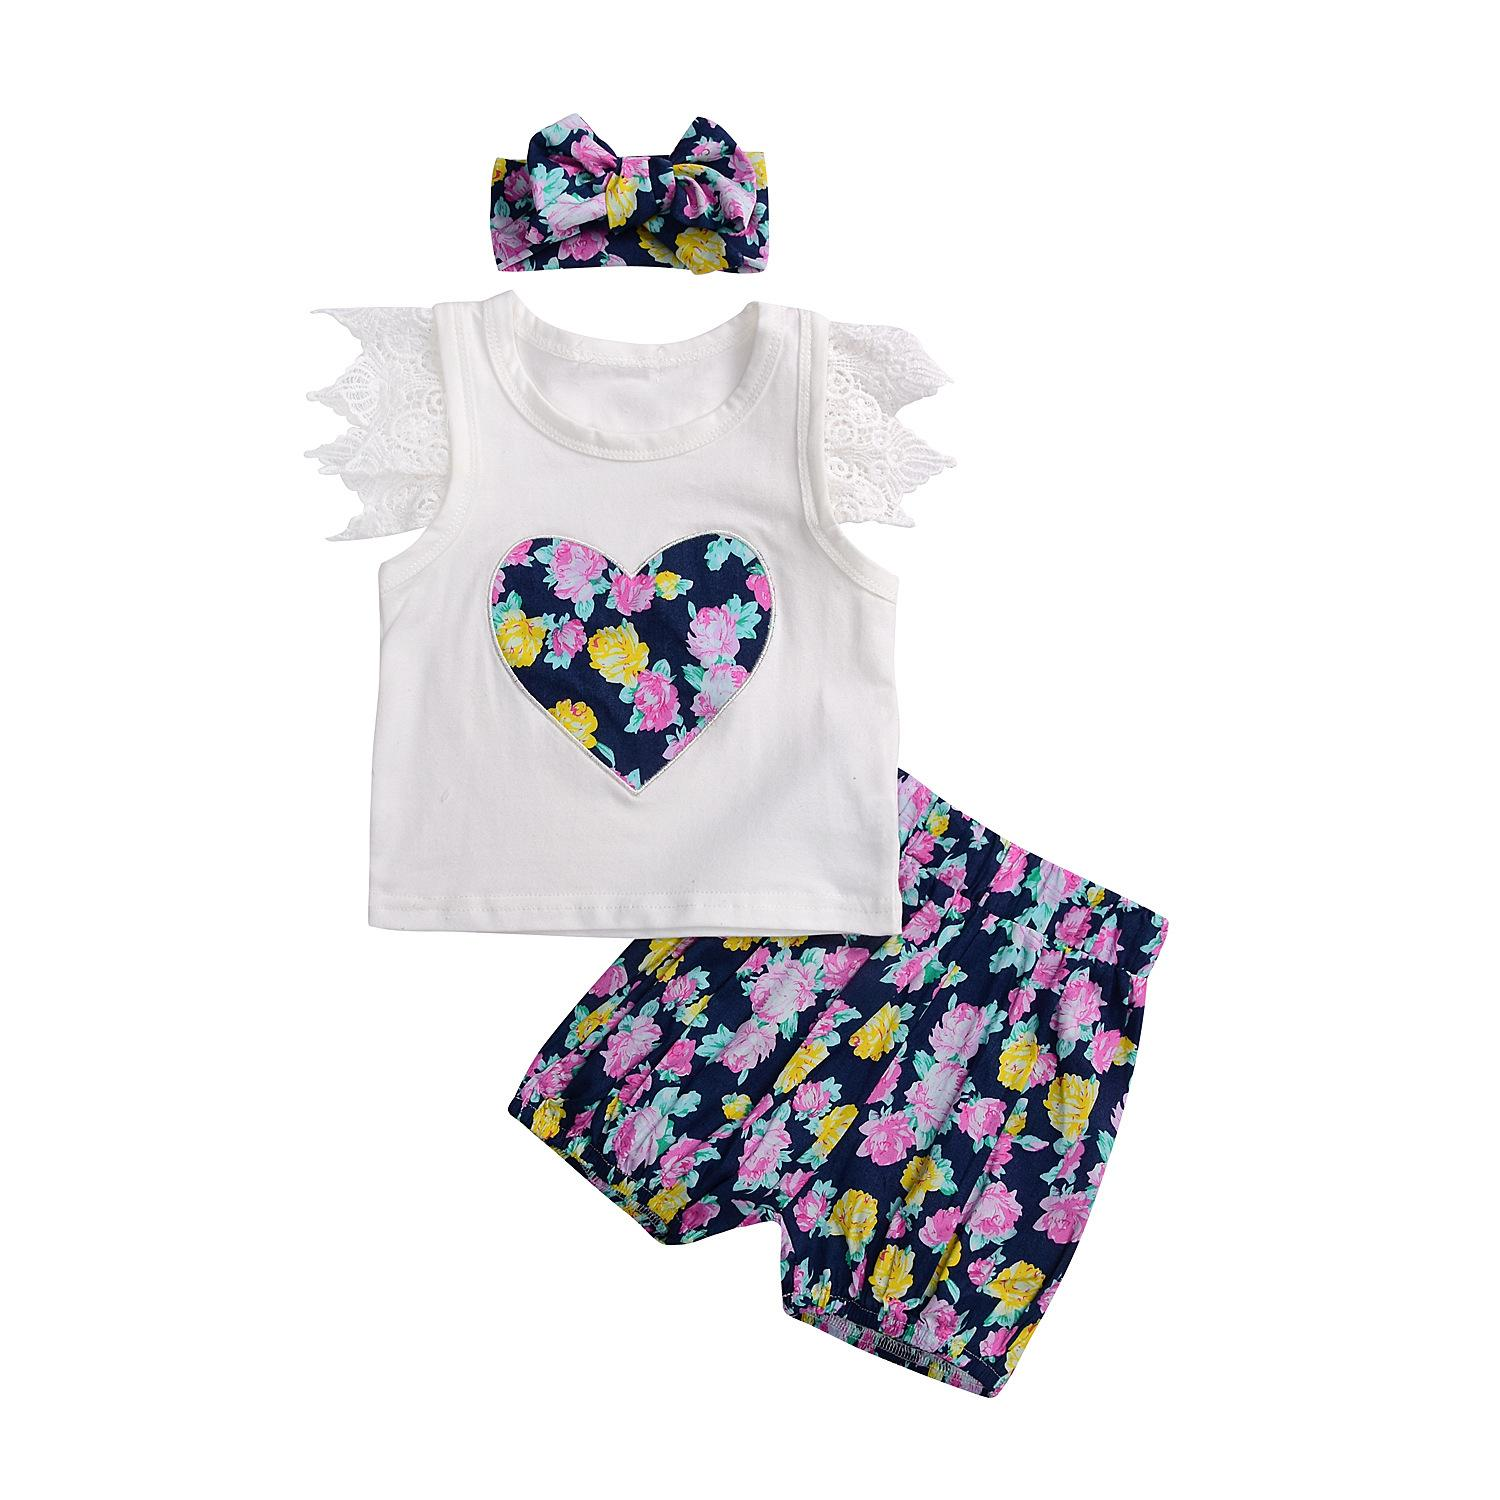 fd2afb8f9d3 Cheap Baby Girl Sets Children Clothing Summer Embroidery Heart Girls Suits Kids  Clothes Cotton T Shirt +short+headband Sets for Baby Girl